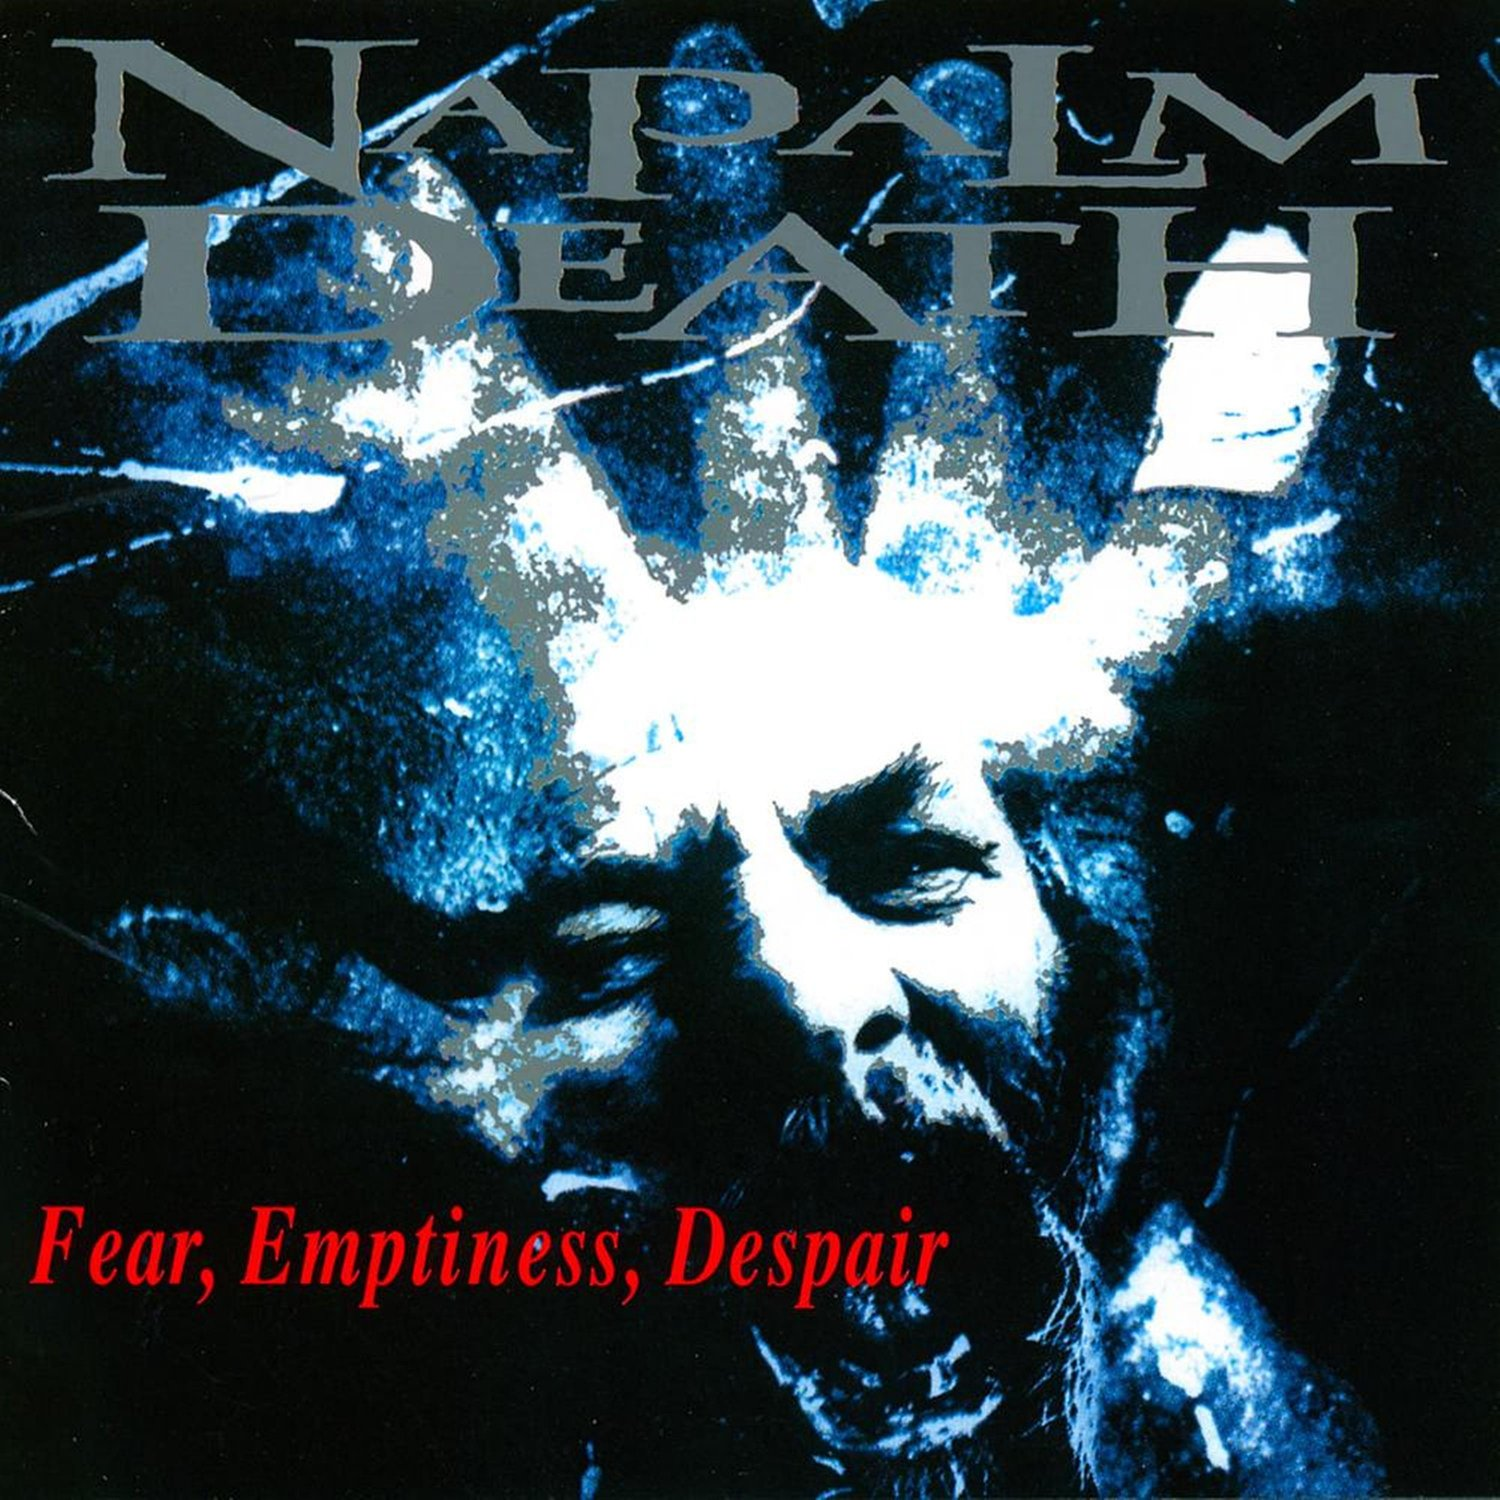 NAPALM DEATH Fear Emtiness Despair BANNER Huge 4X4 Ft Fabric Poster Tapestry Flag album cover art